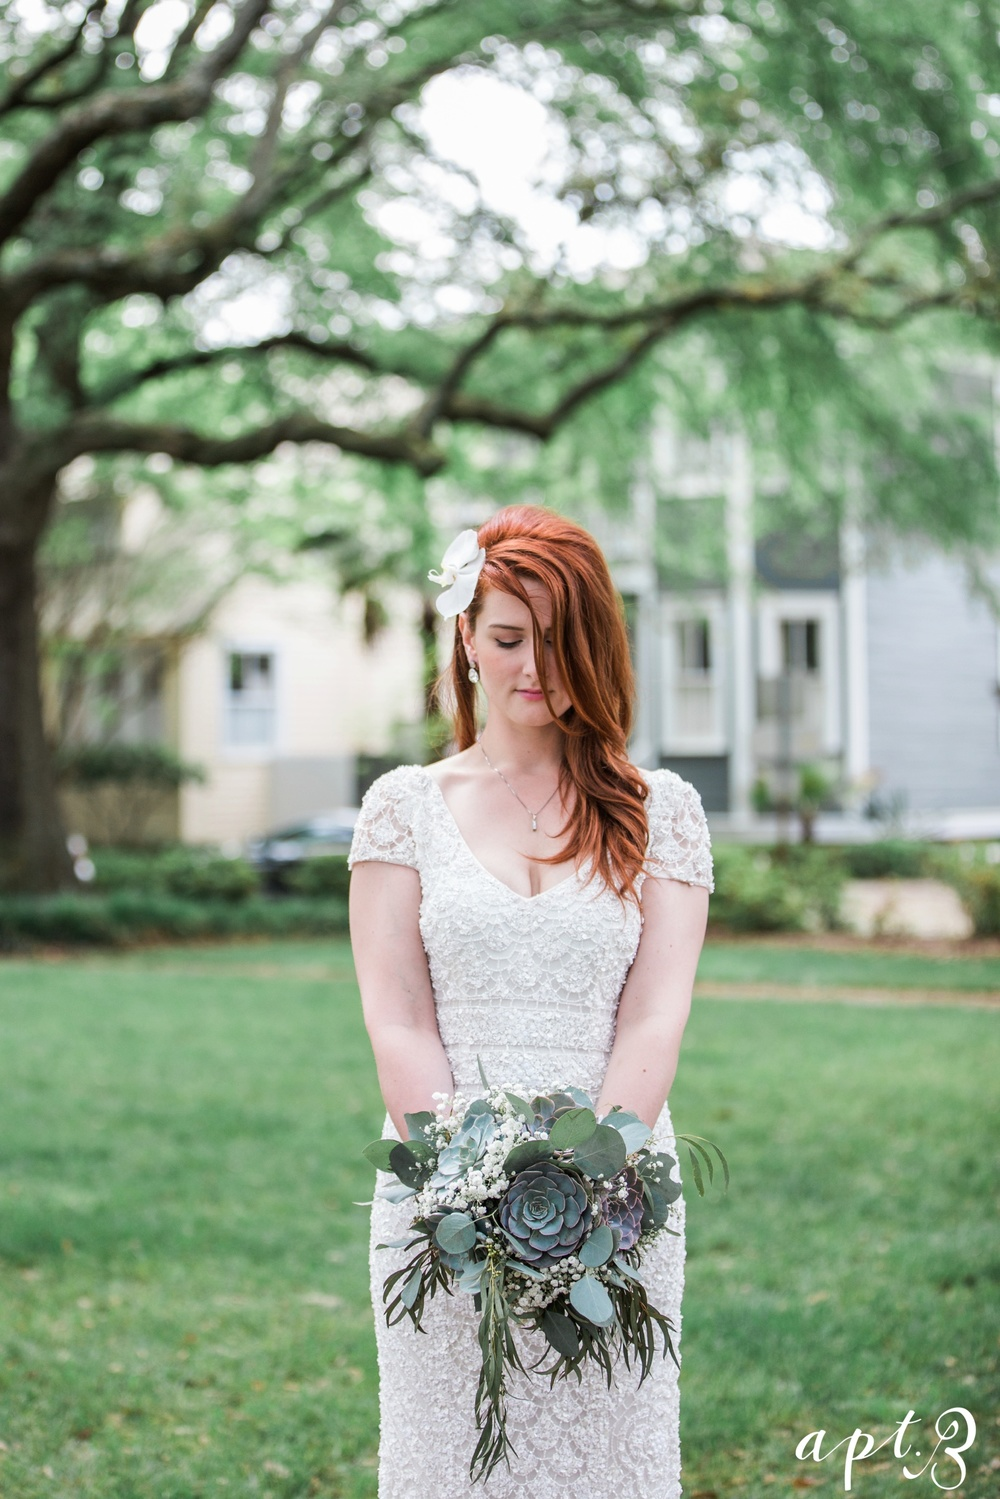 AptBPhotography_SavannahWedding_ChaBella-33.jpg